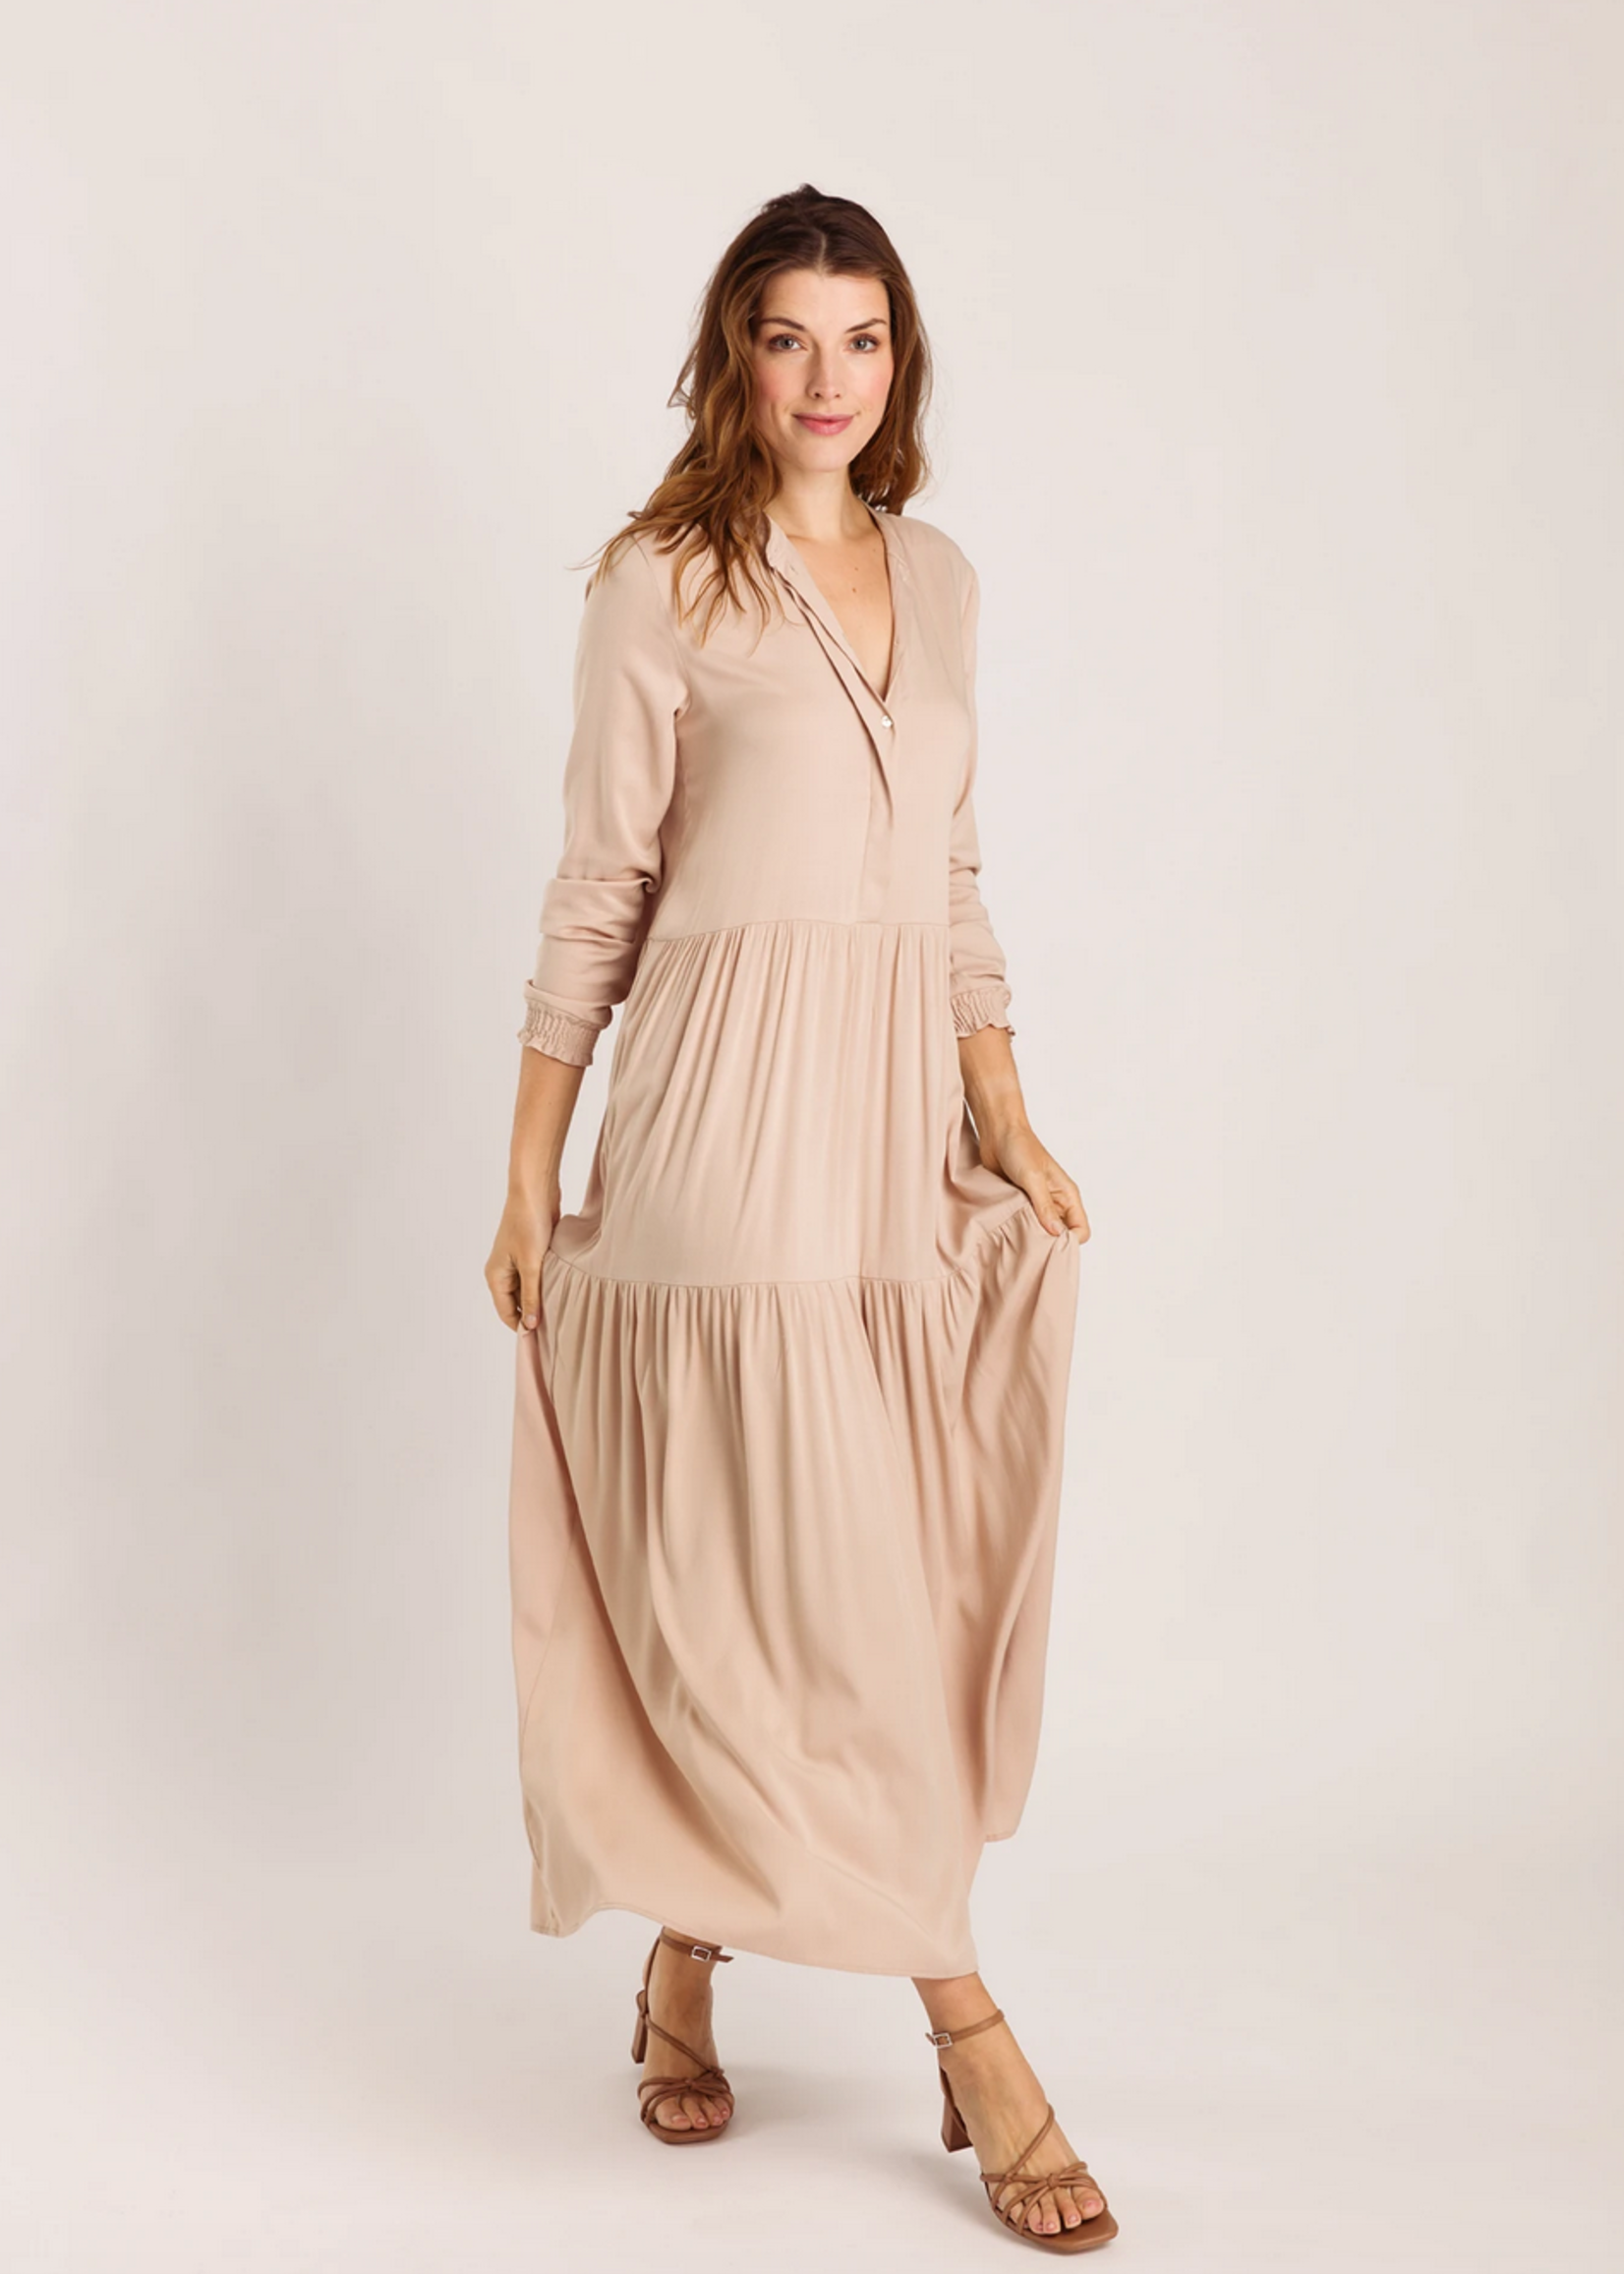 Wearable Stories Lucy Dress